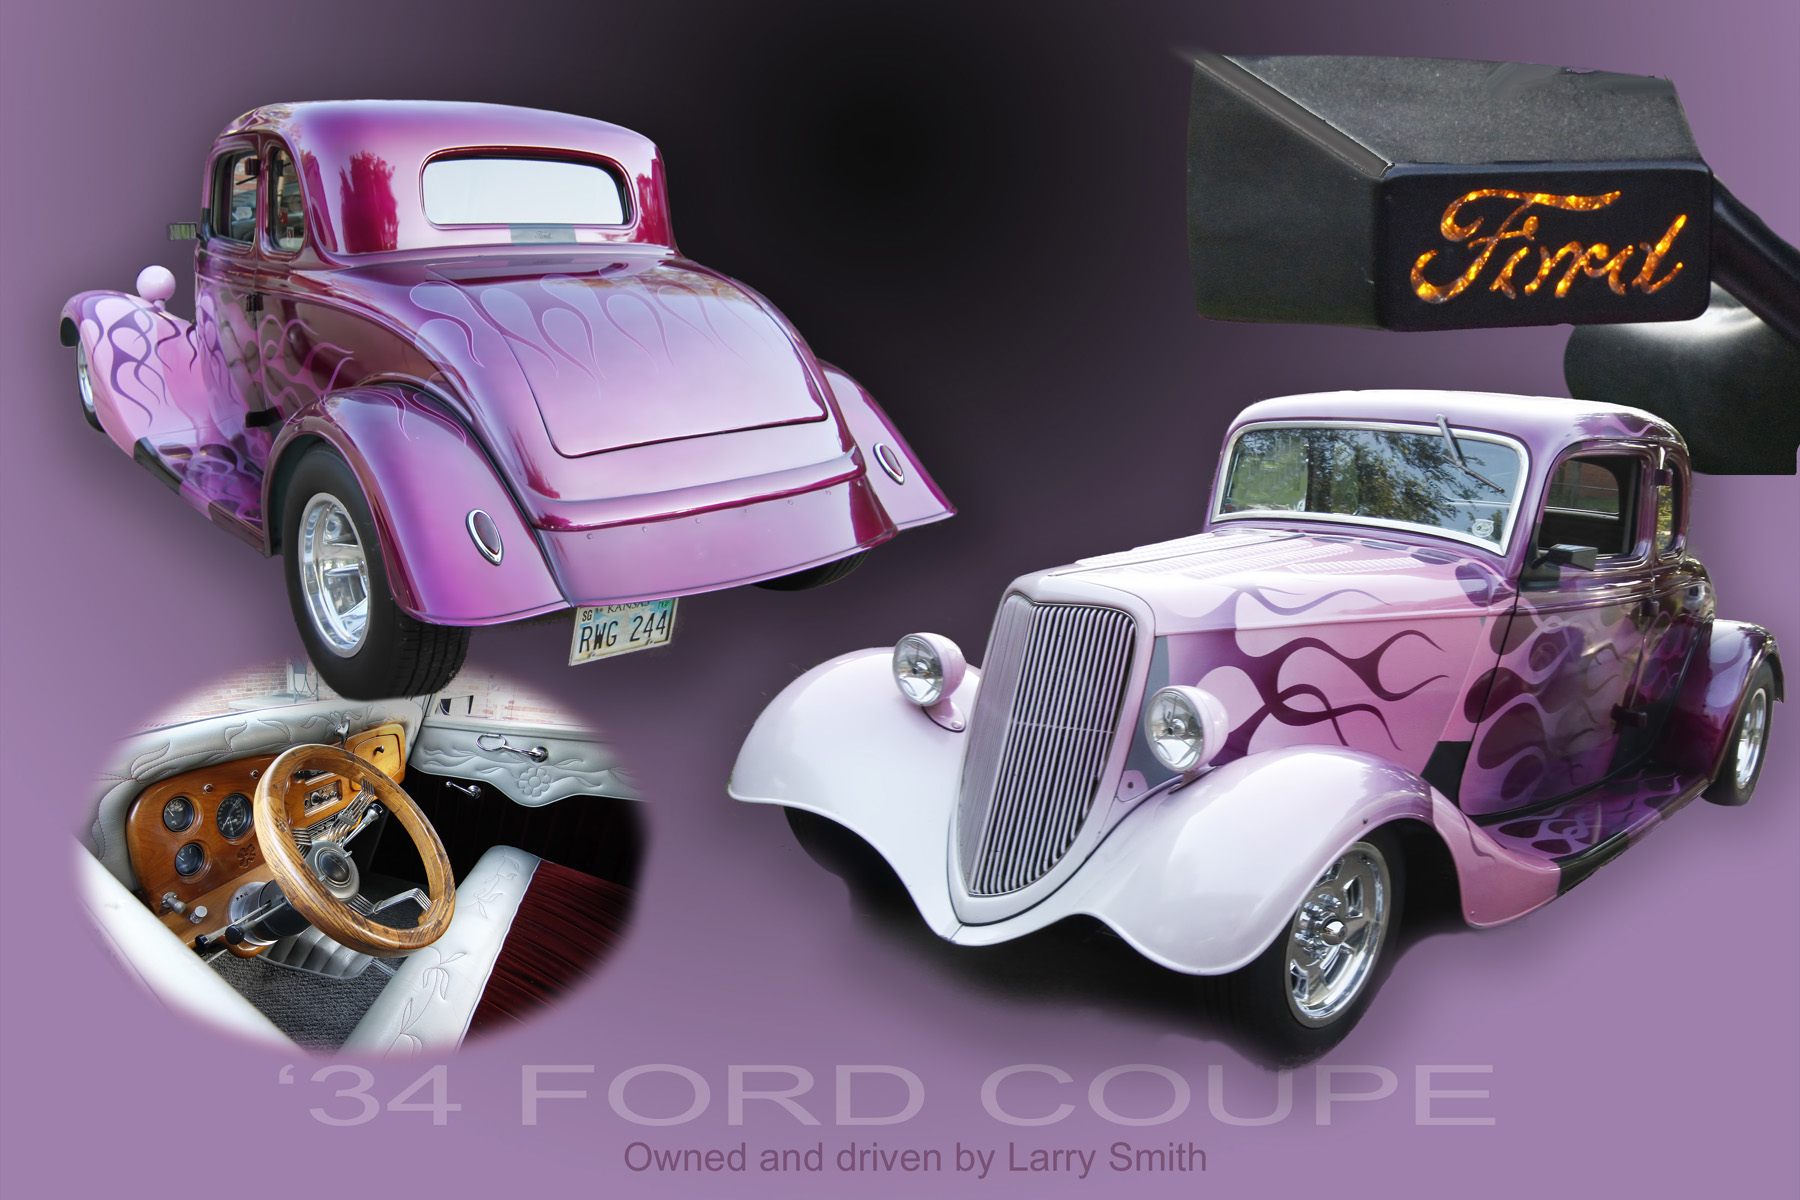 FORD-COUPE-MONTAGE-copy